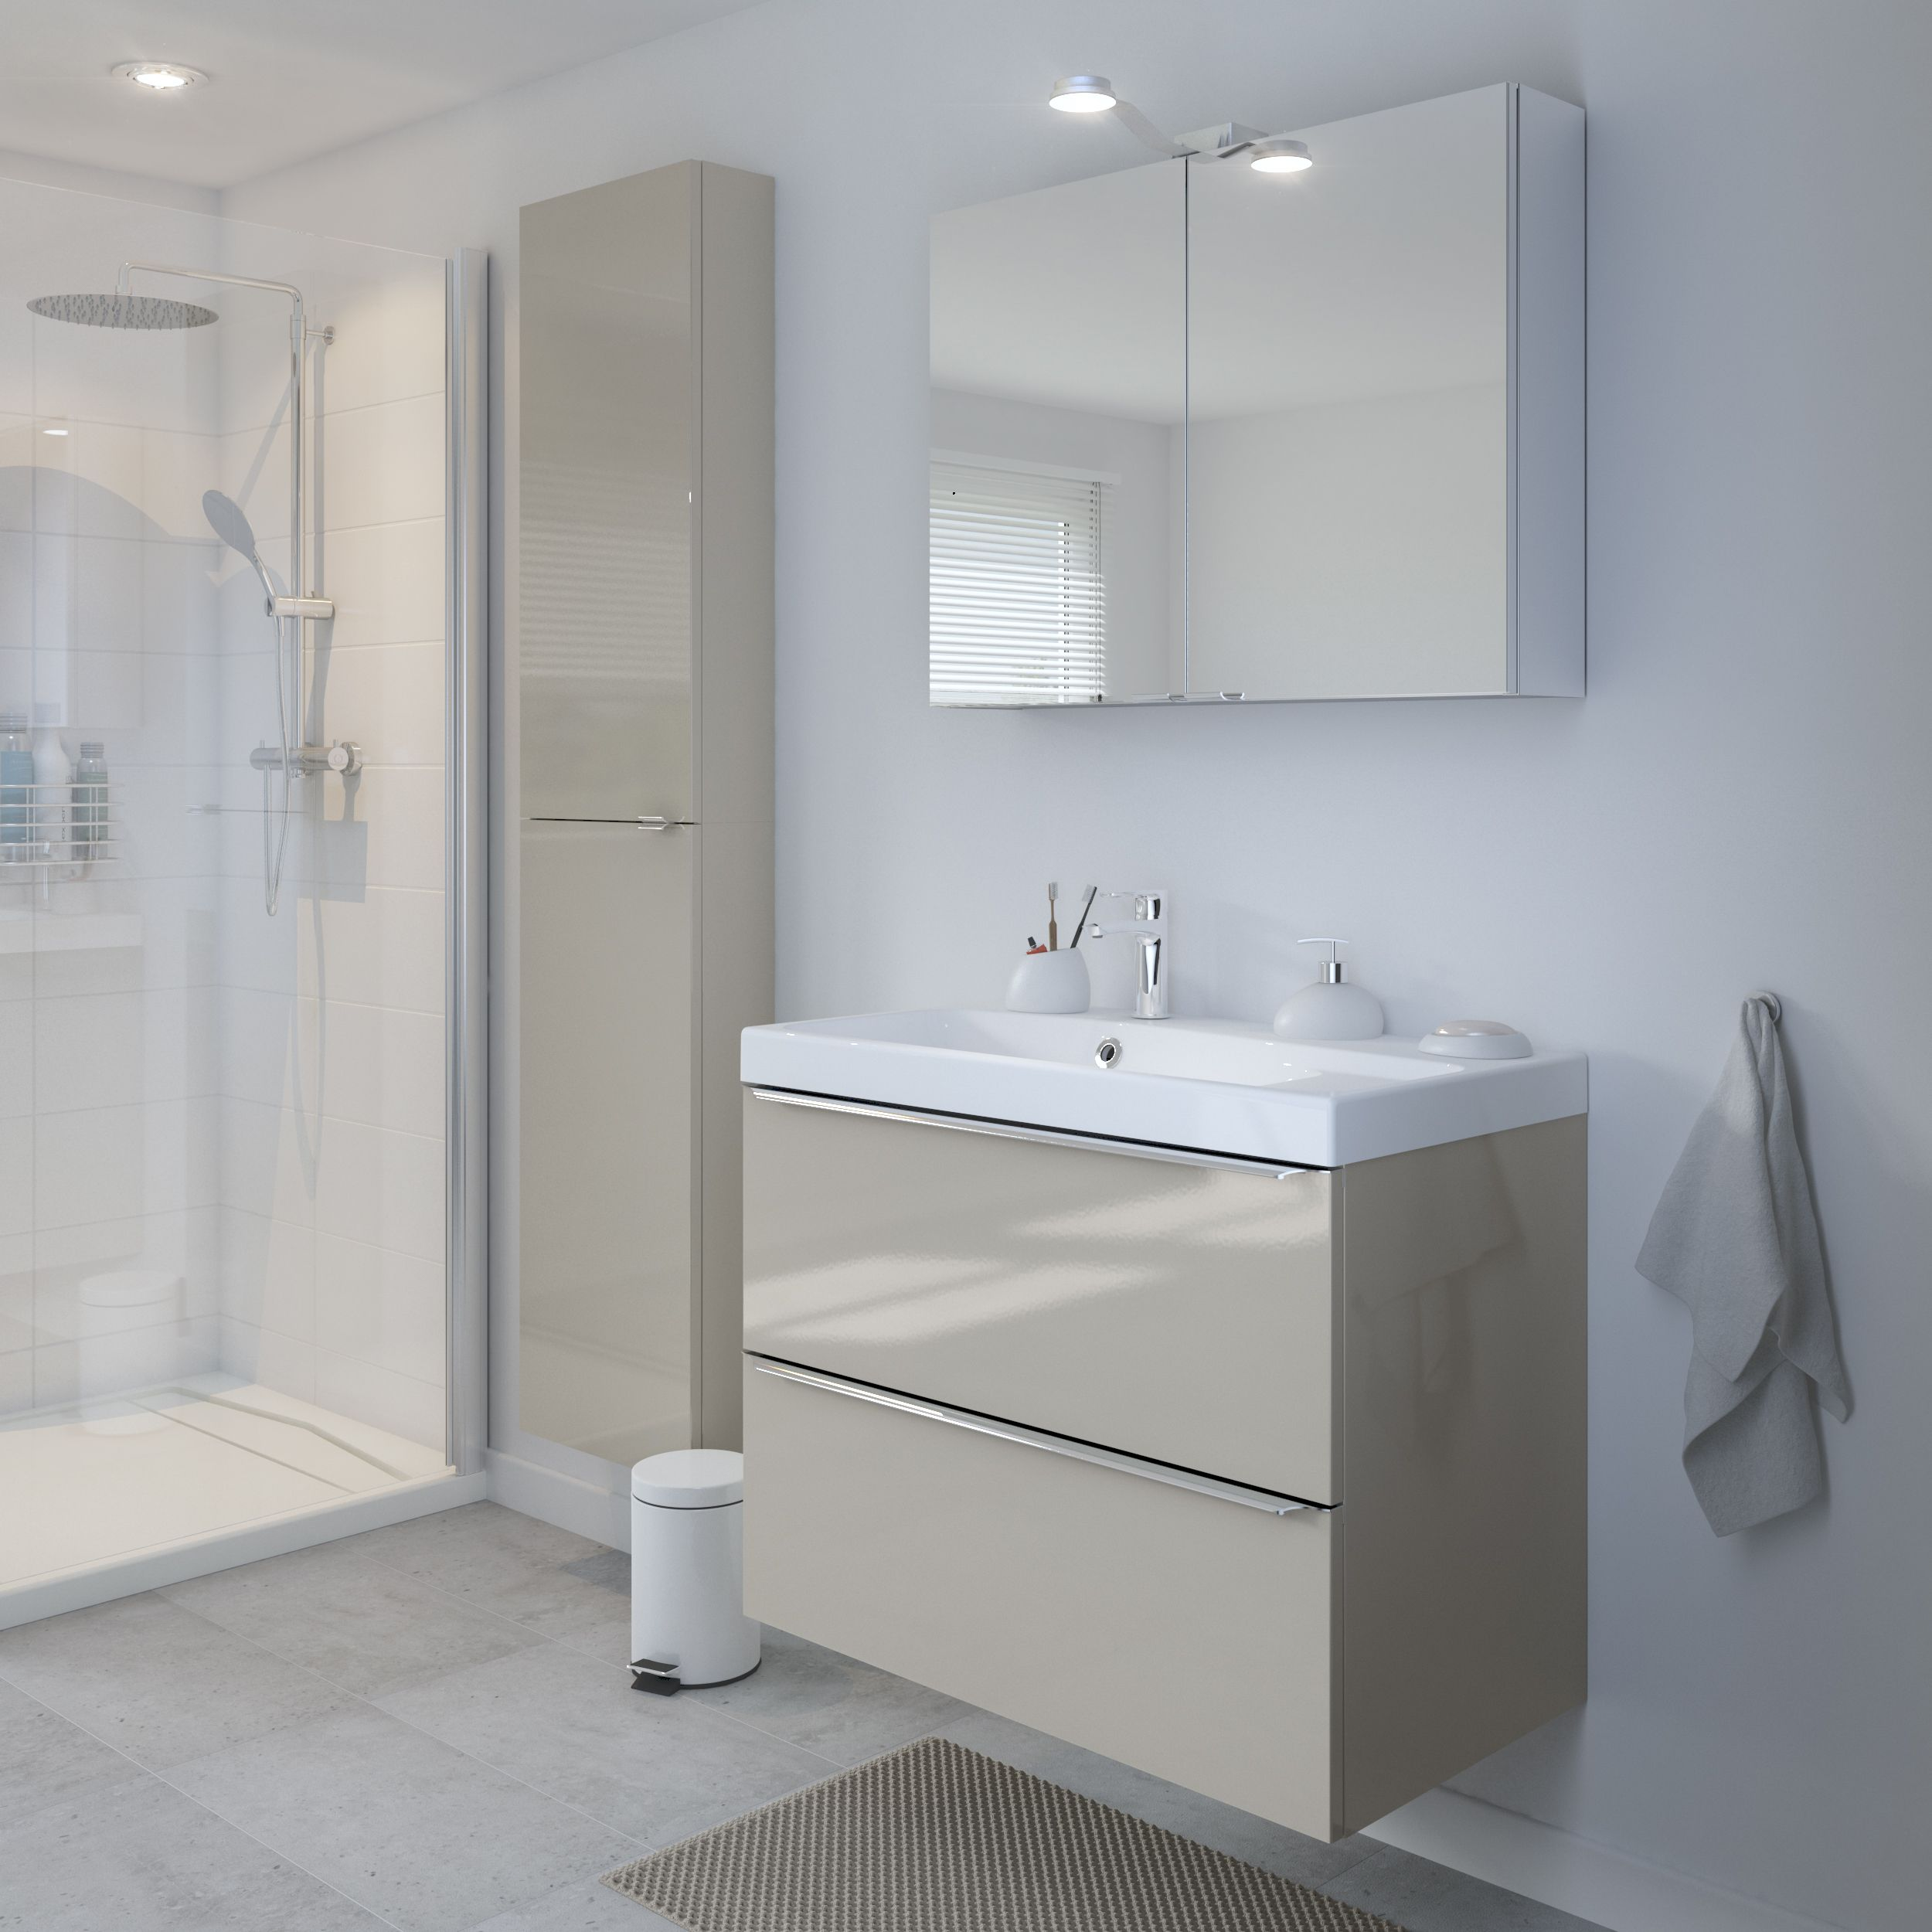 storage is essential in busy bathrooms the imandra gloss on home inspirations this year the perfect dream bathrooms diy bathroom ideas id=51030